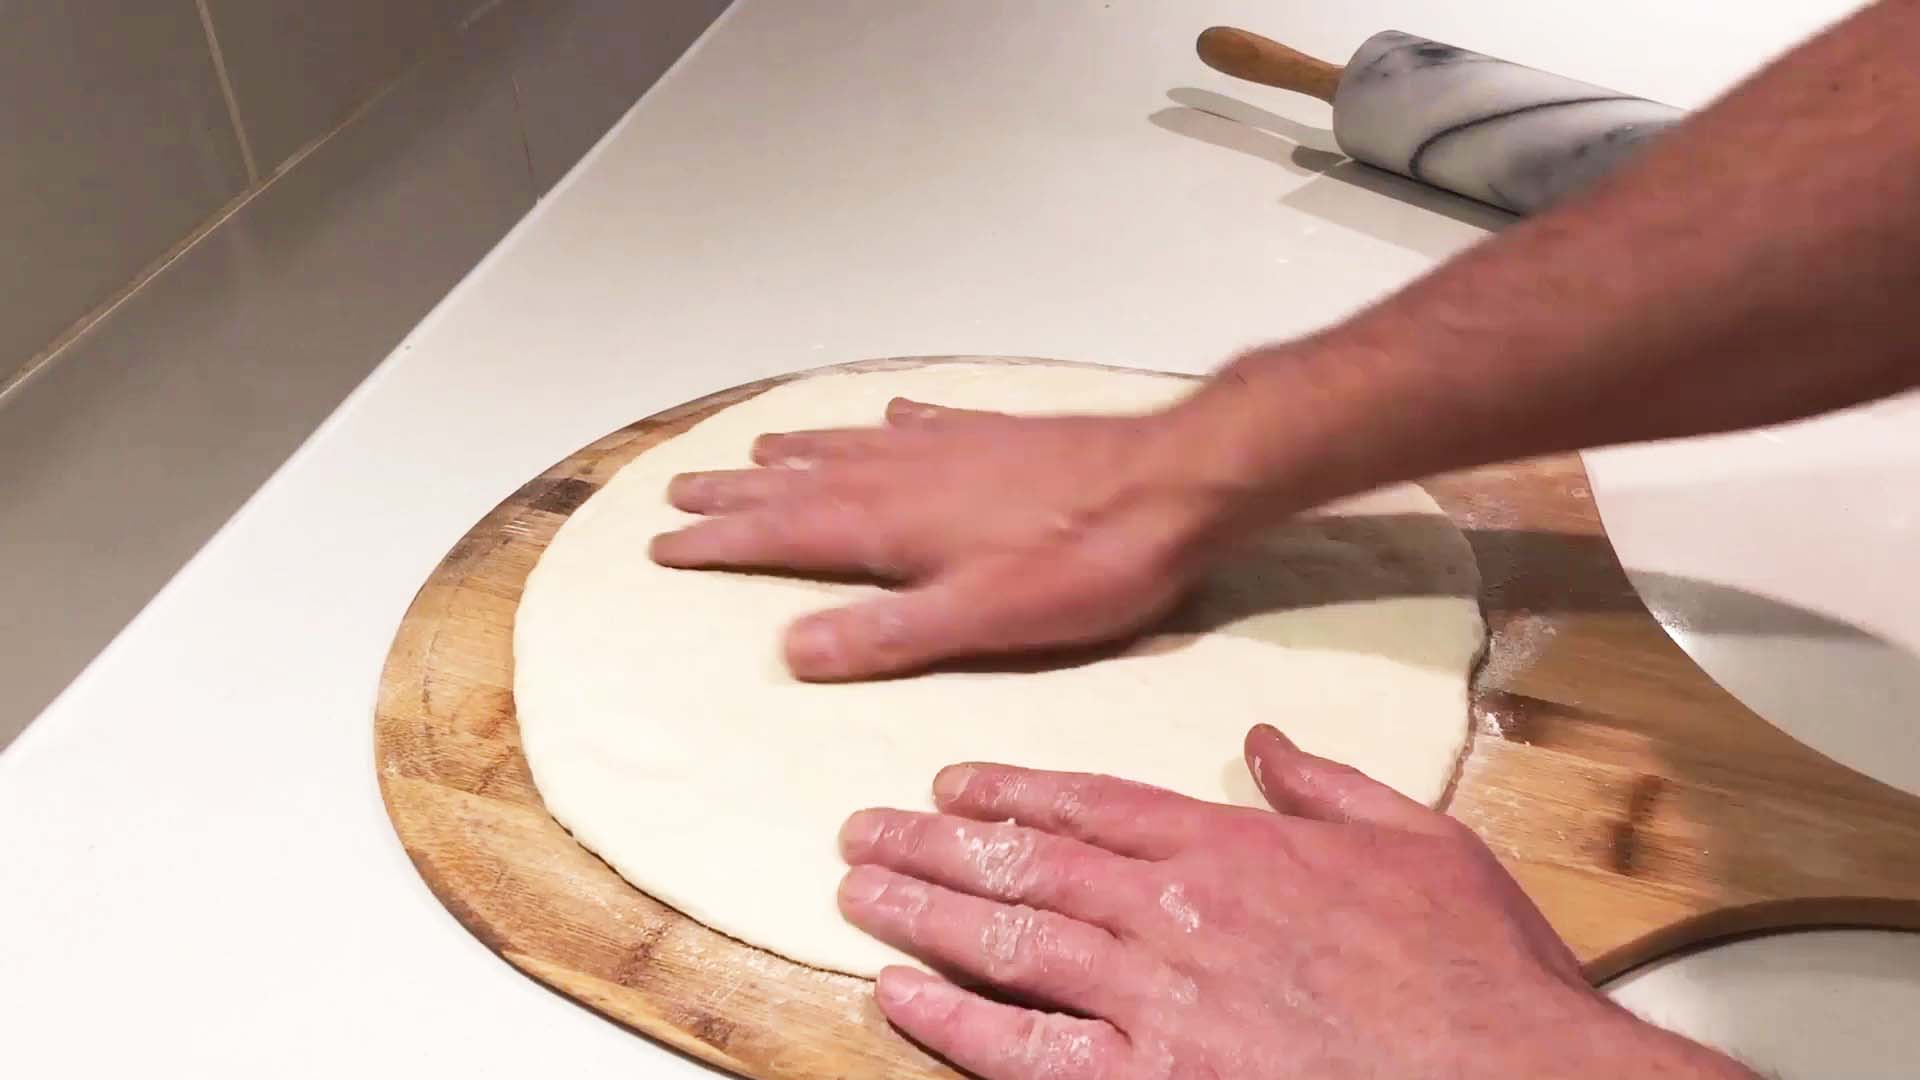 How to make wild pizza dough